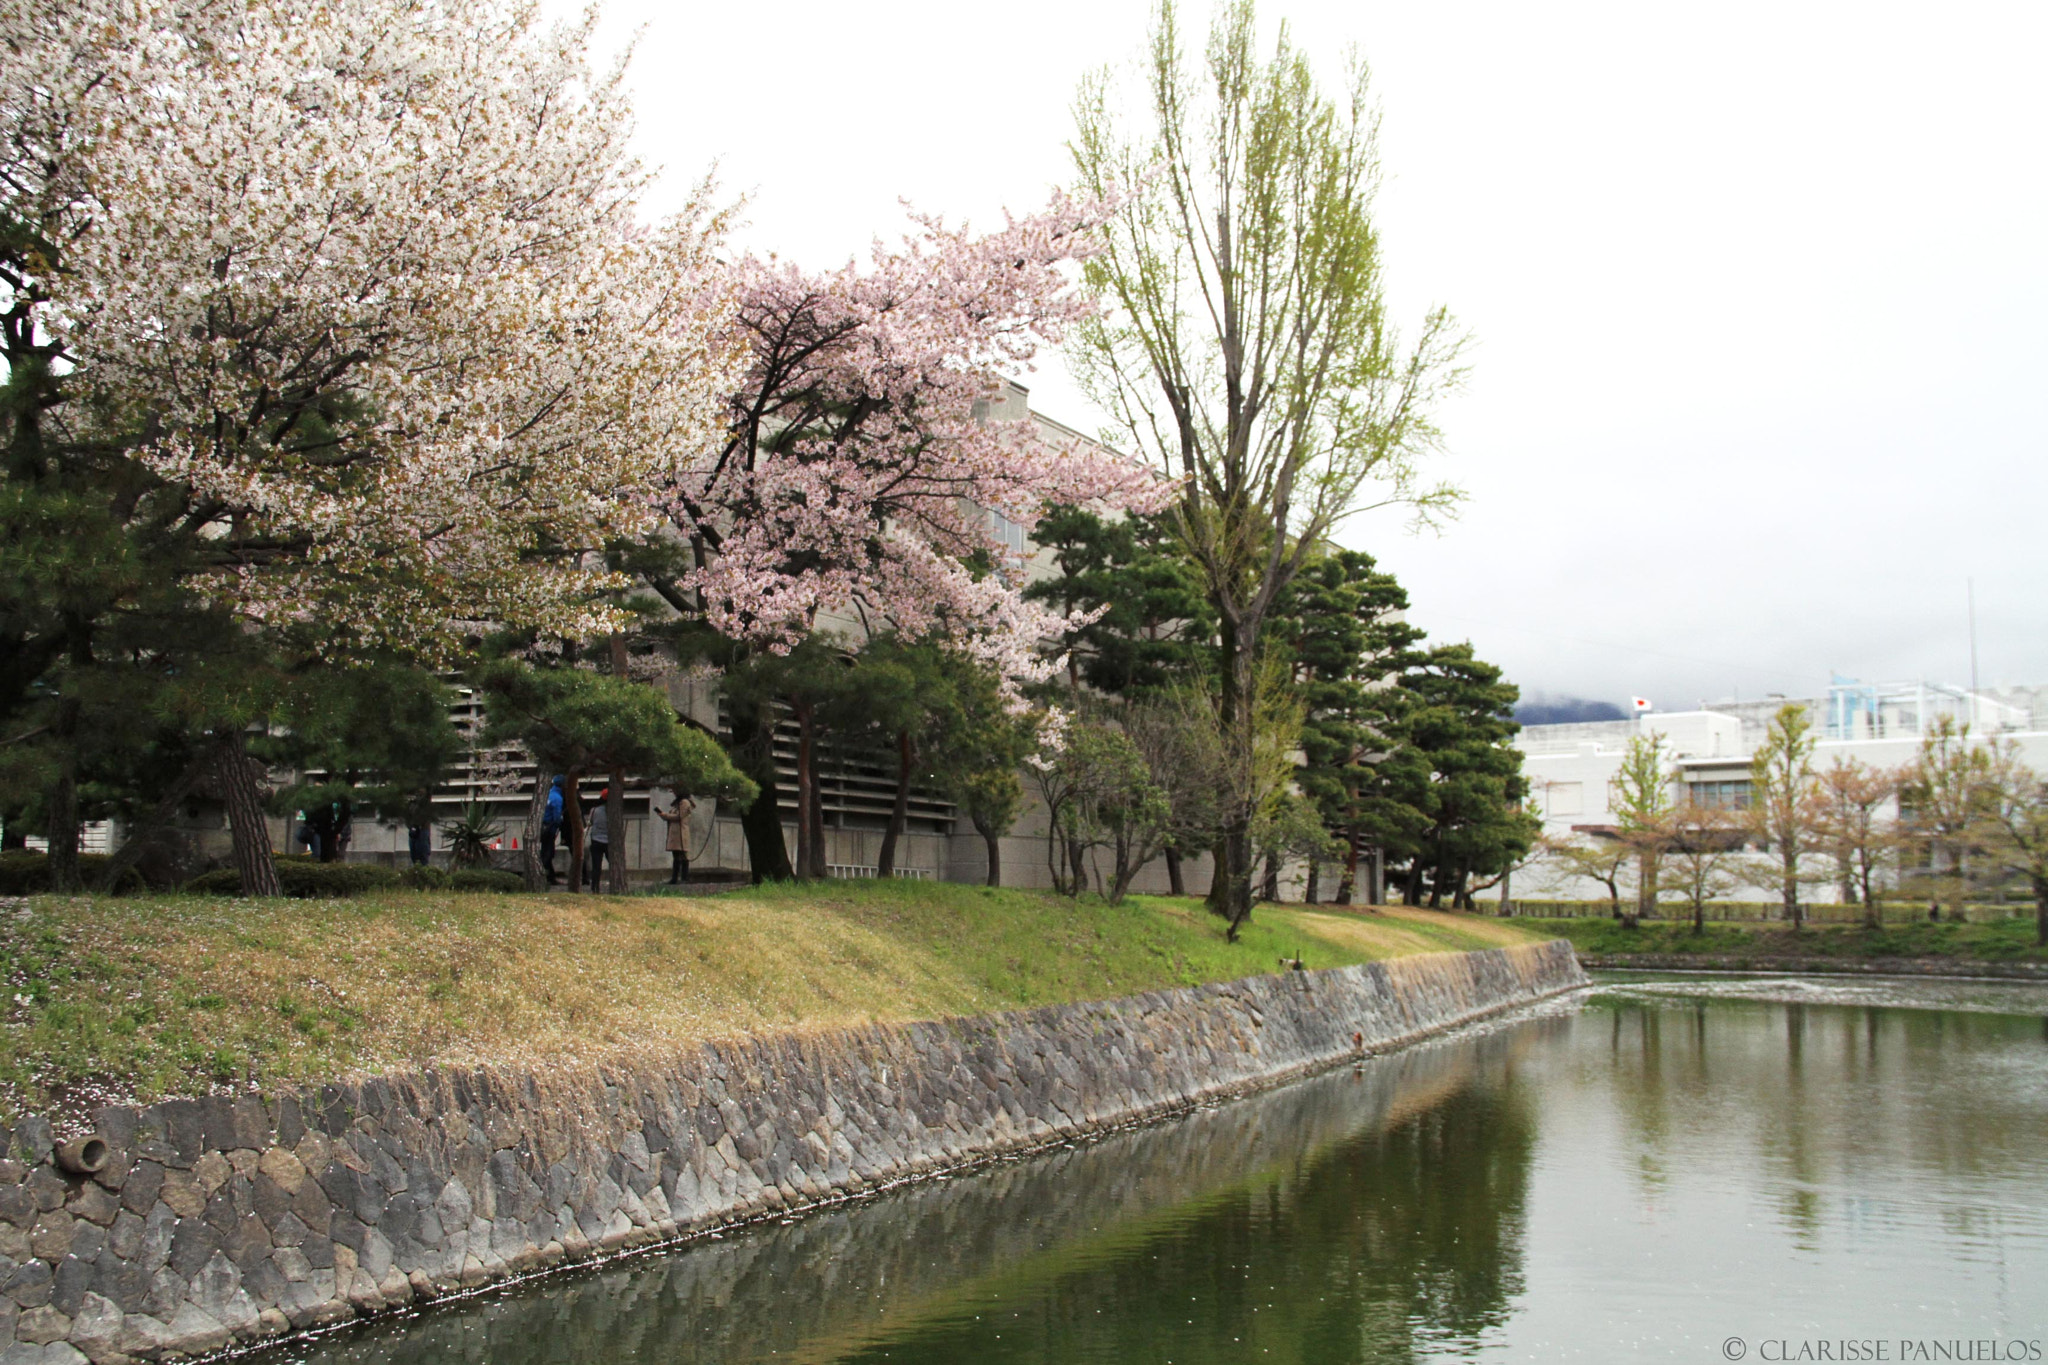 8367995810c69dd83e831d83a6087d72 - Japan Travel Blog April 2015: Matsumoto Castle